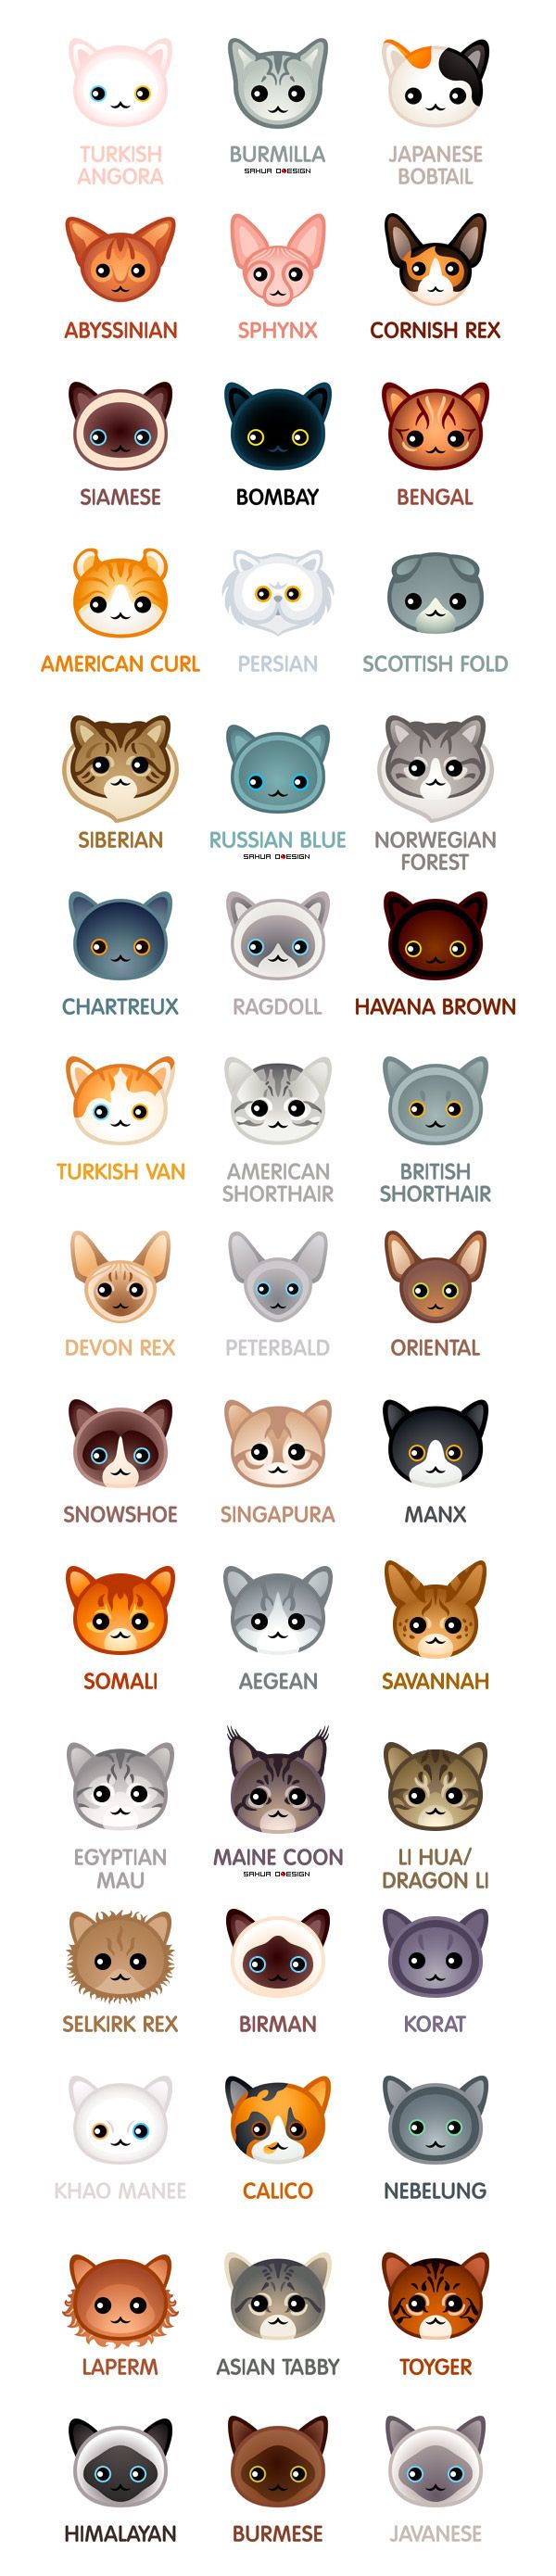 Kawaii cat breeds for the Сat-people of the world... Meow =^● ⋏ ●^=Don't hesitate to name your loved ones if I missed 'em.